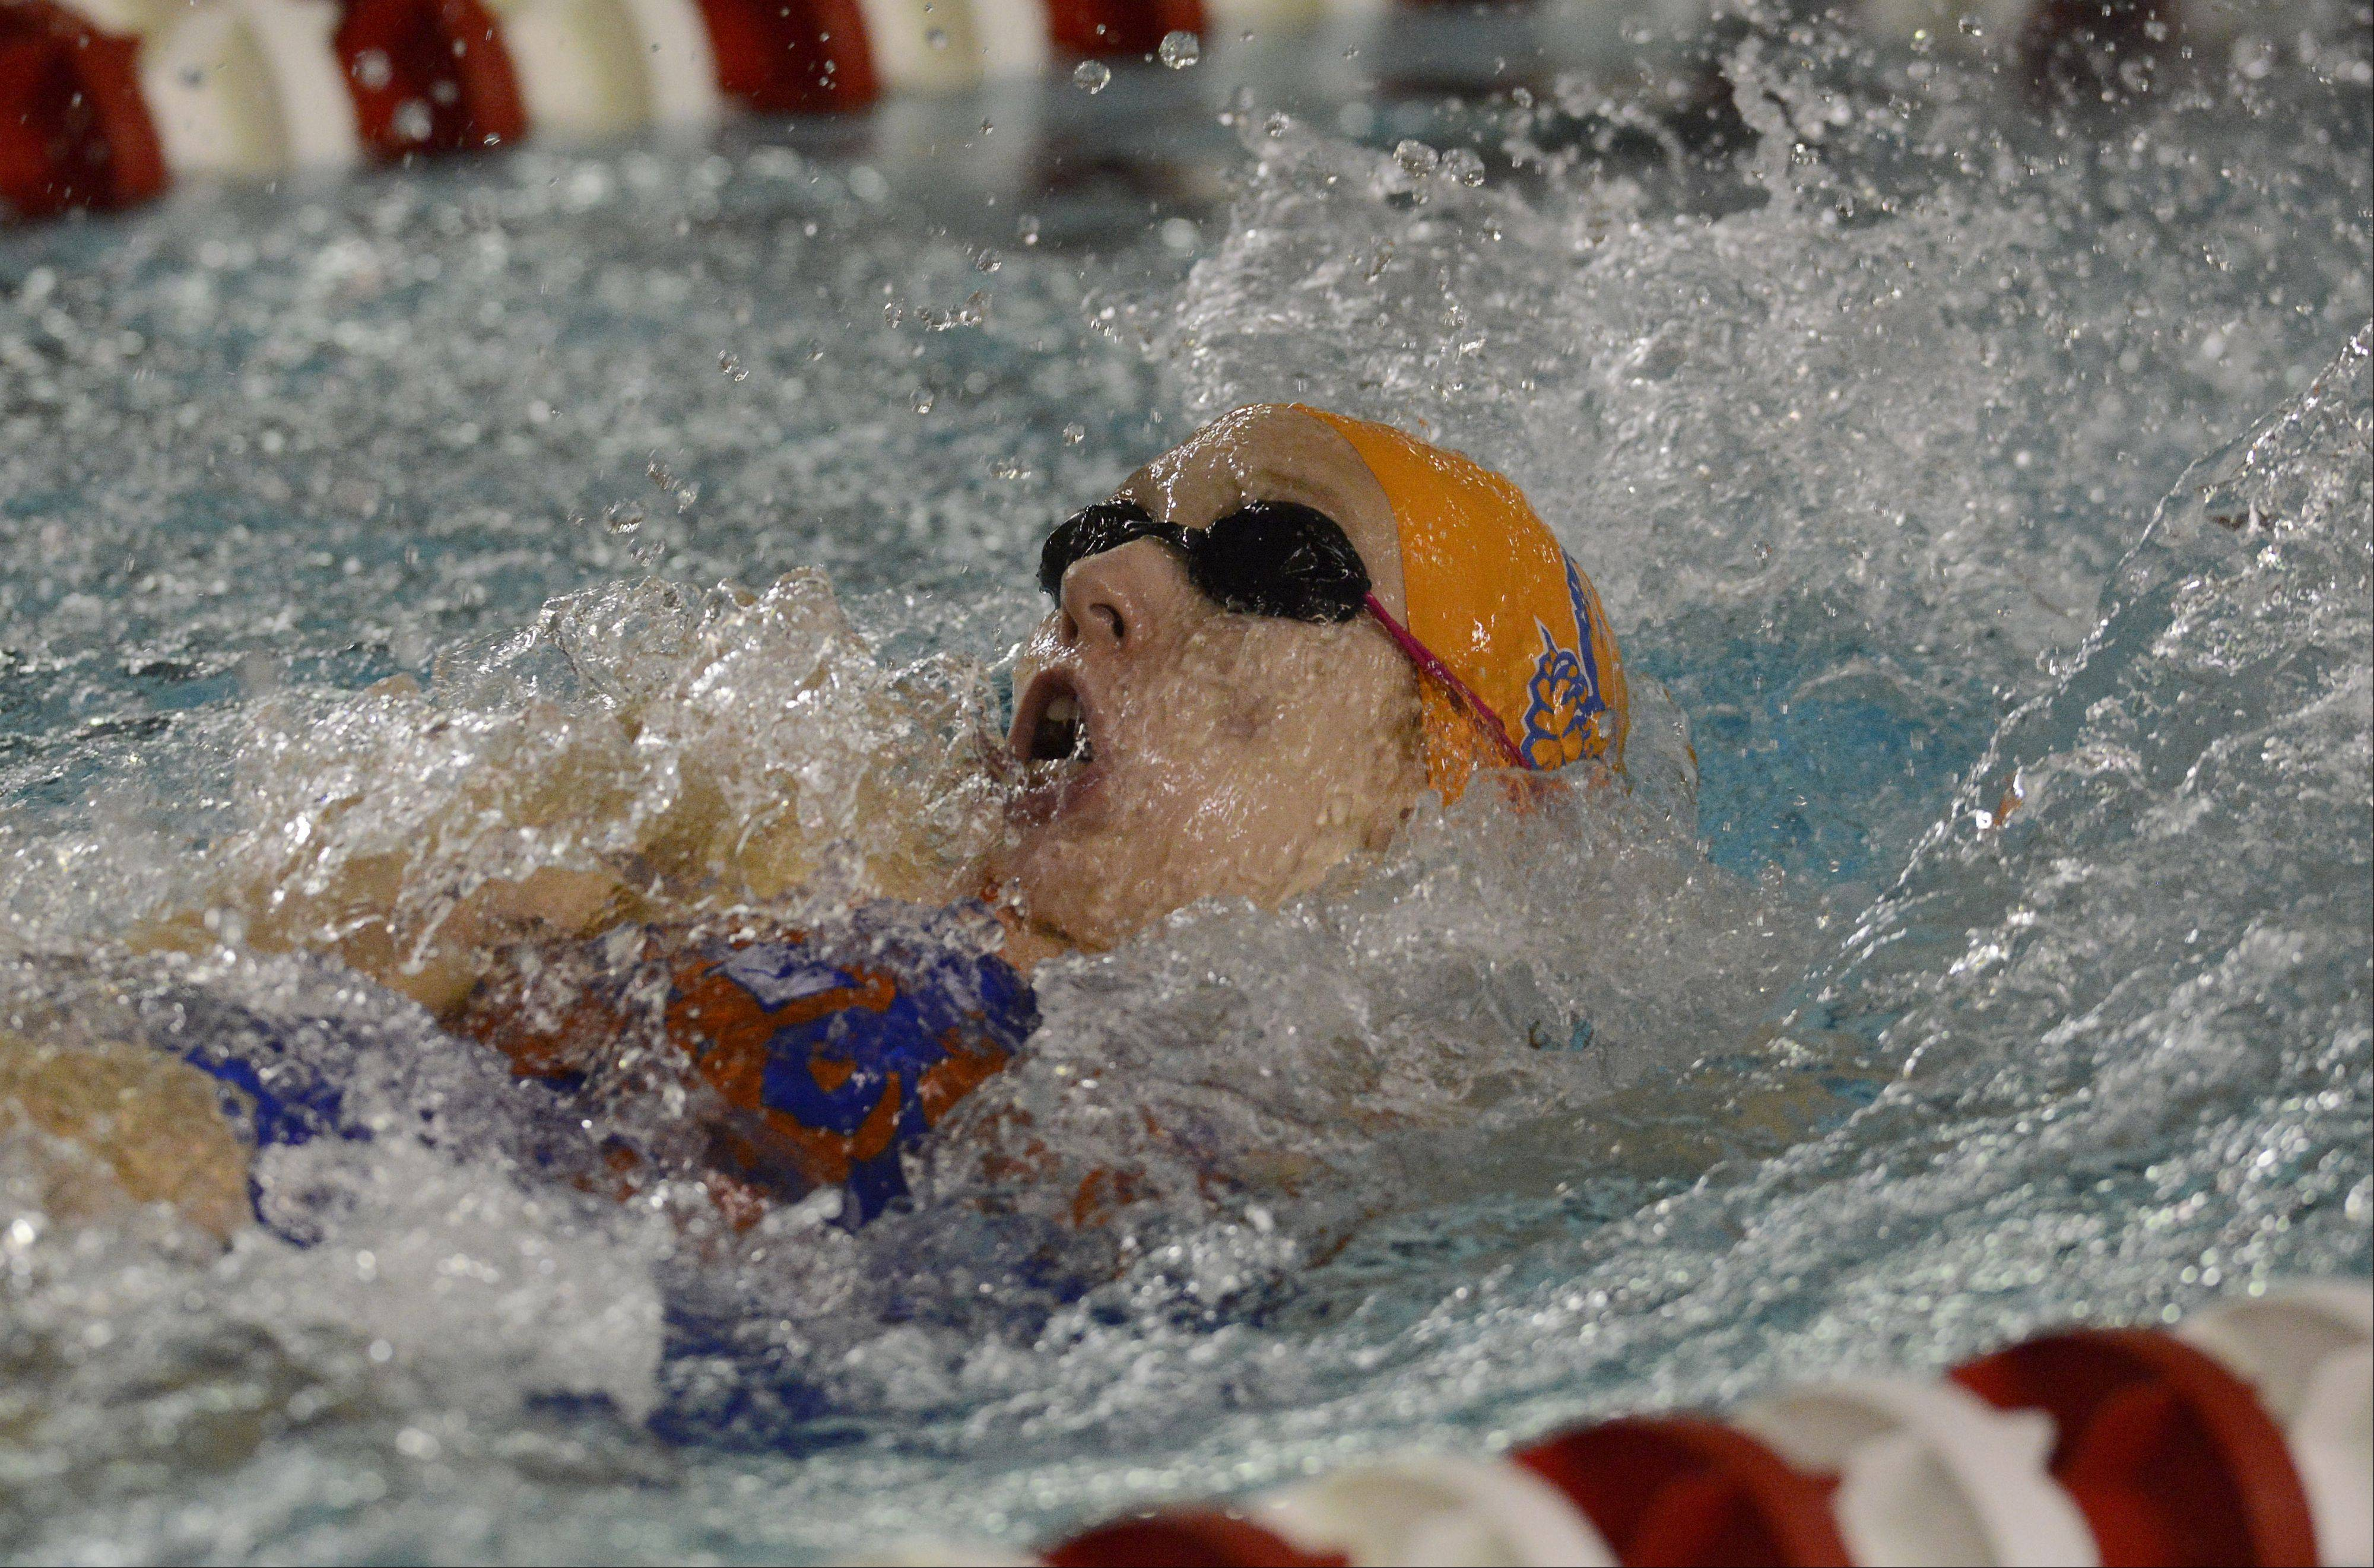 Sarah Miles takes the leadoff leg of Hoffman Estates' winning 200-meter medley relay on Wednesday at Palatine.